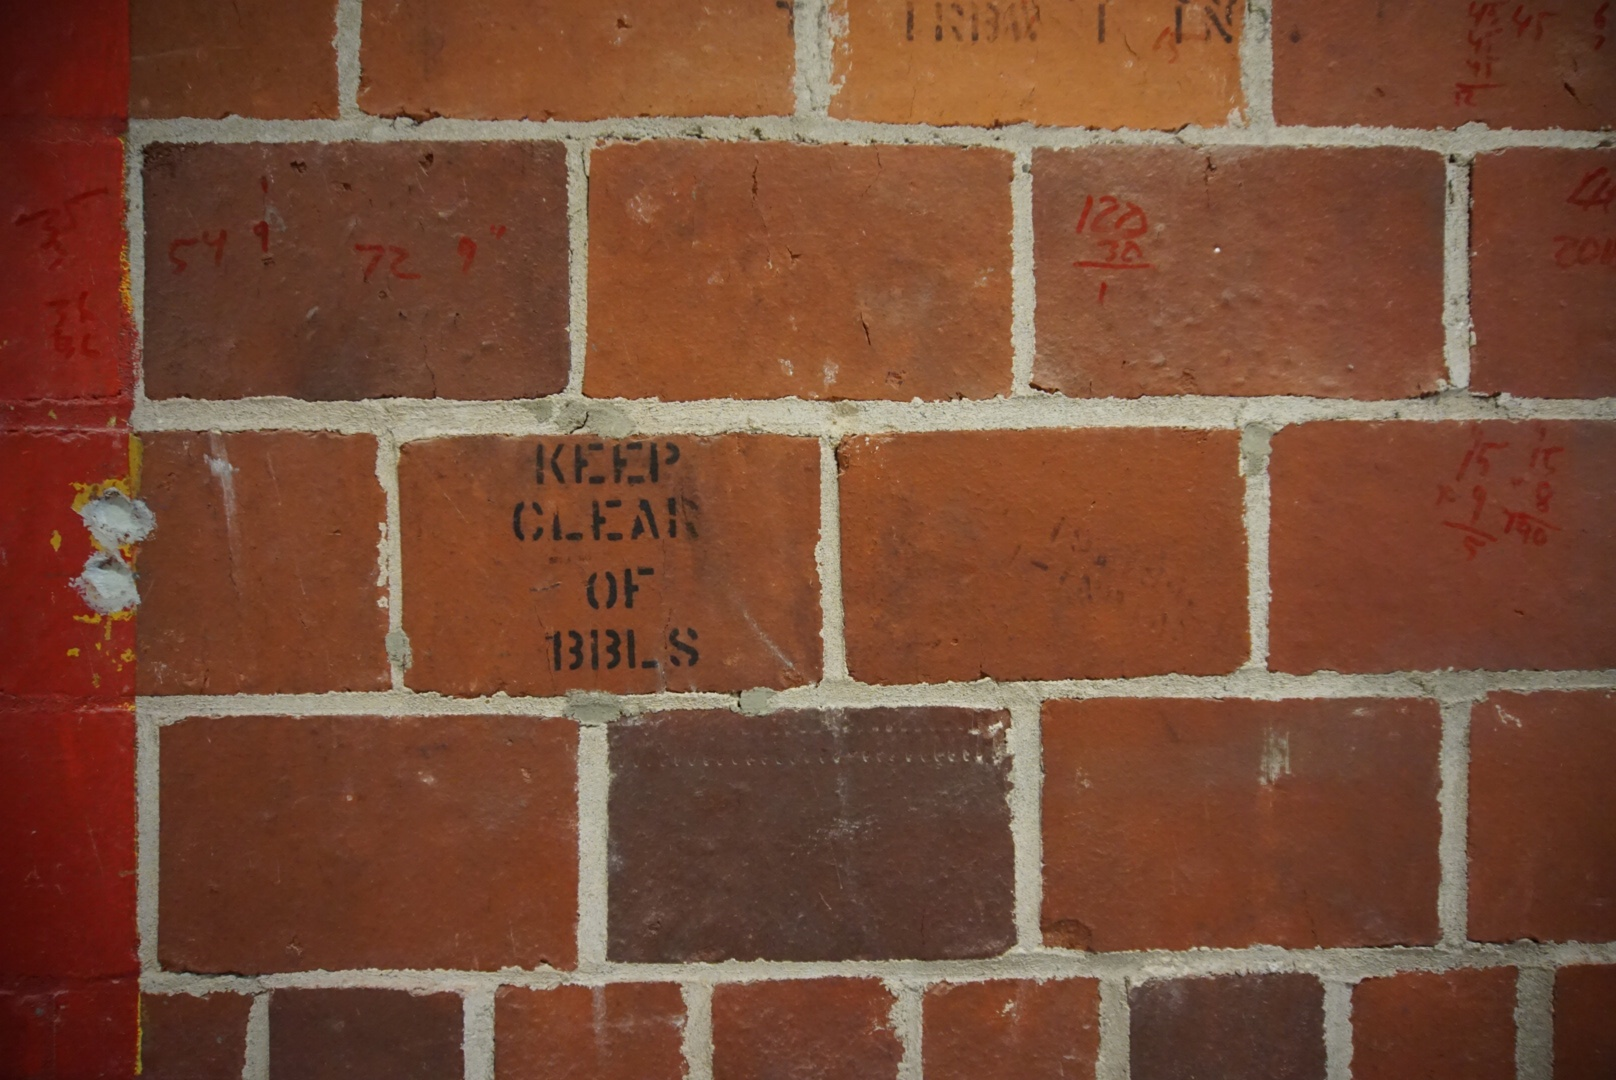 If you stop to study the walls, you see evidence of the building's former life as a liquor rickhouse (barrel warehouse).